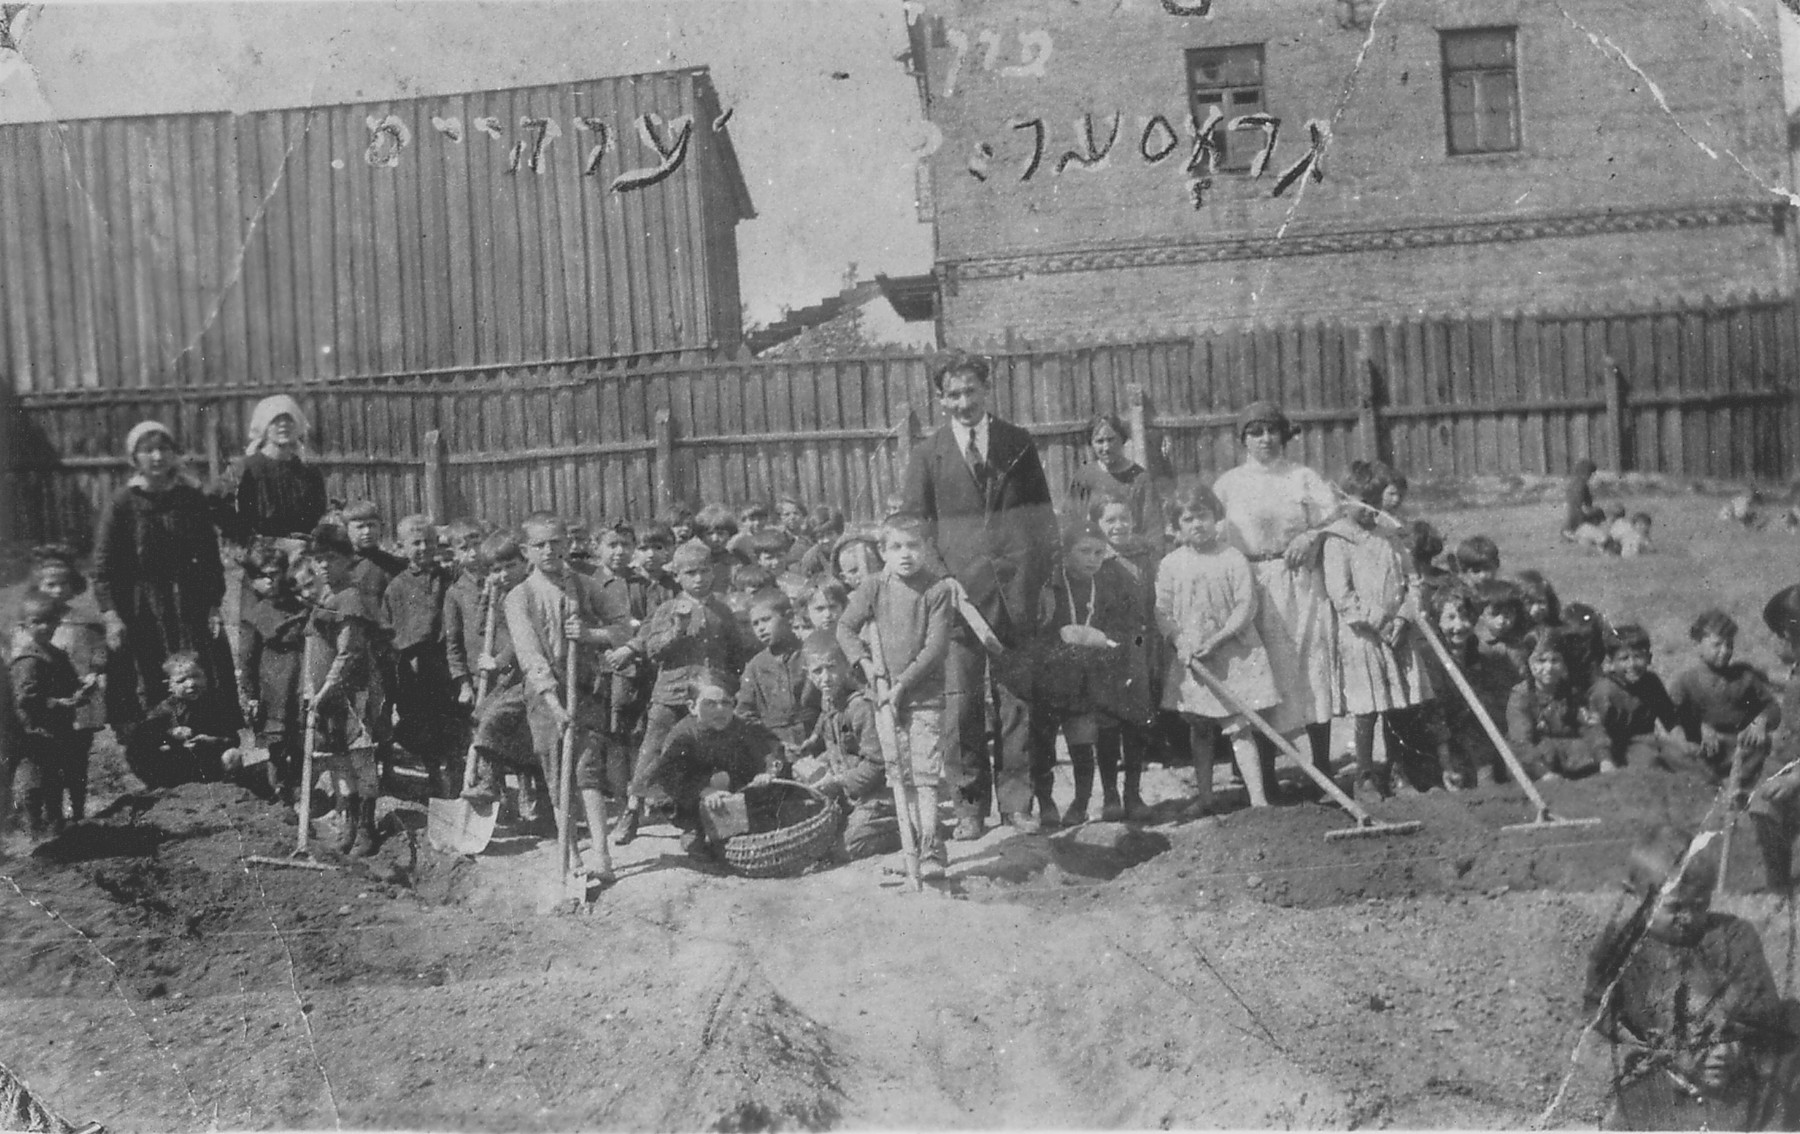 Students from the Bialystok Yiddish school raking in a yard.  Icchok Melamedowicz taught mathematics at this school.